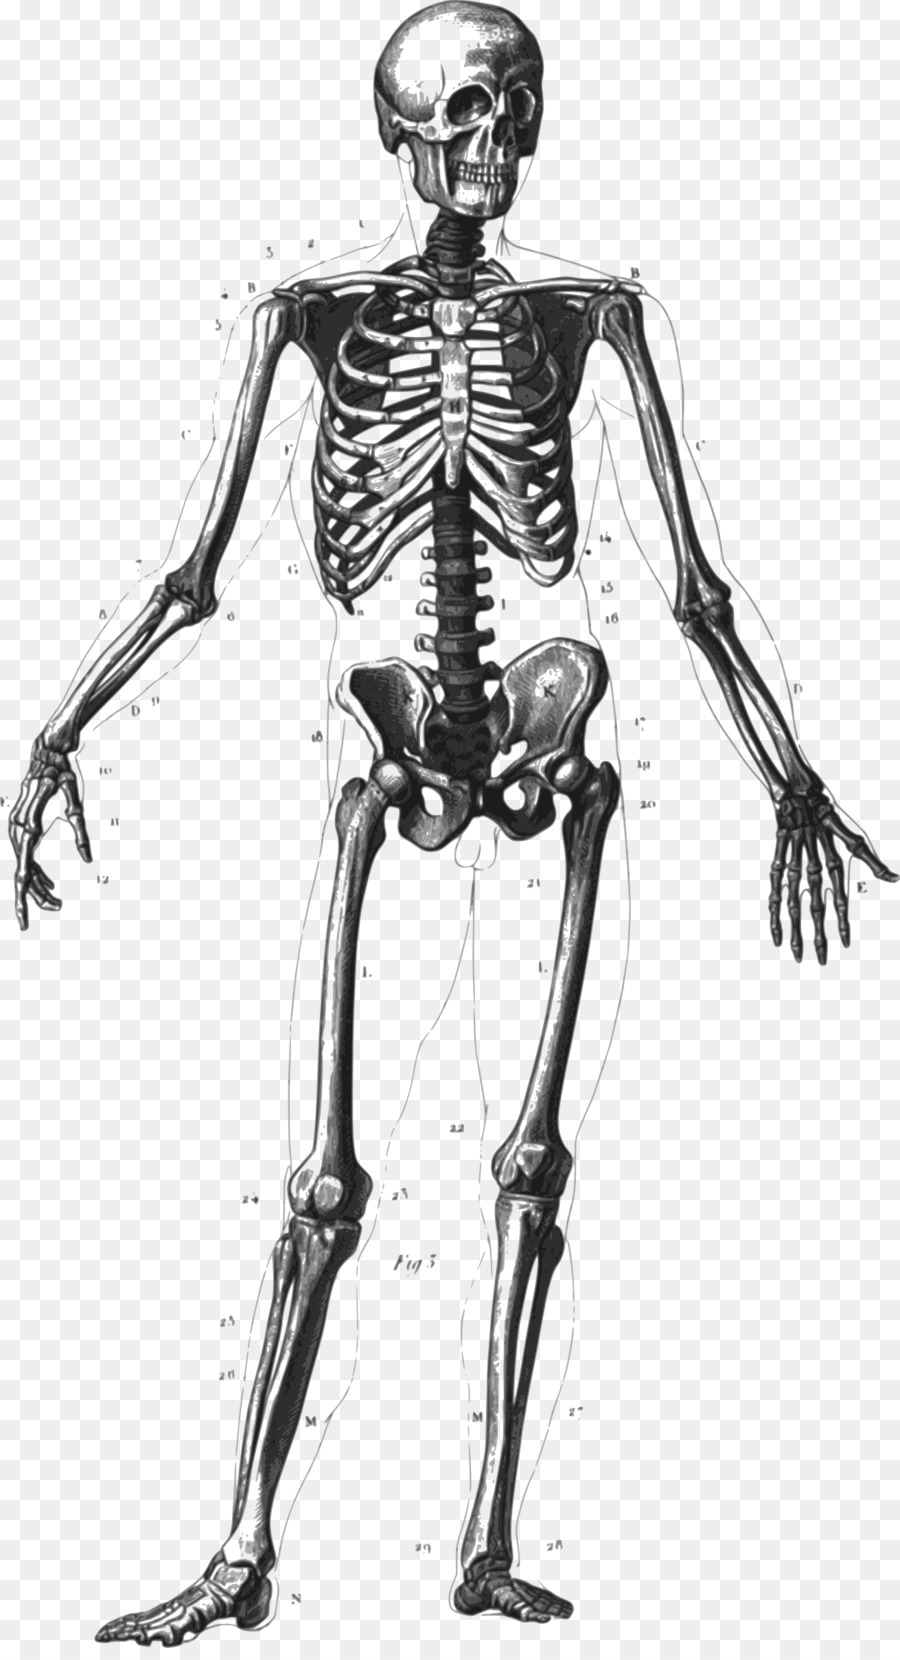 The human skeleton homo. Body clipart anatomy